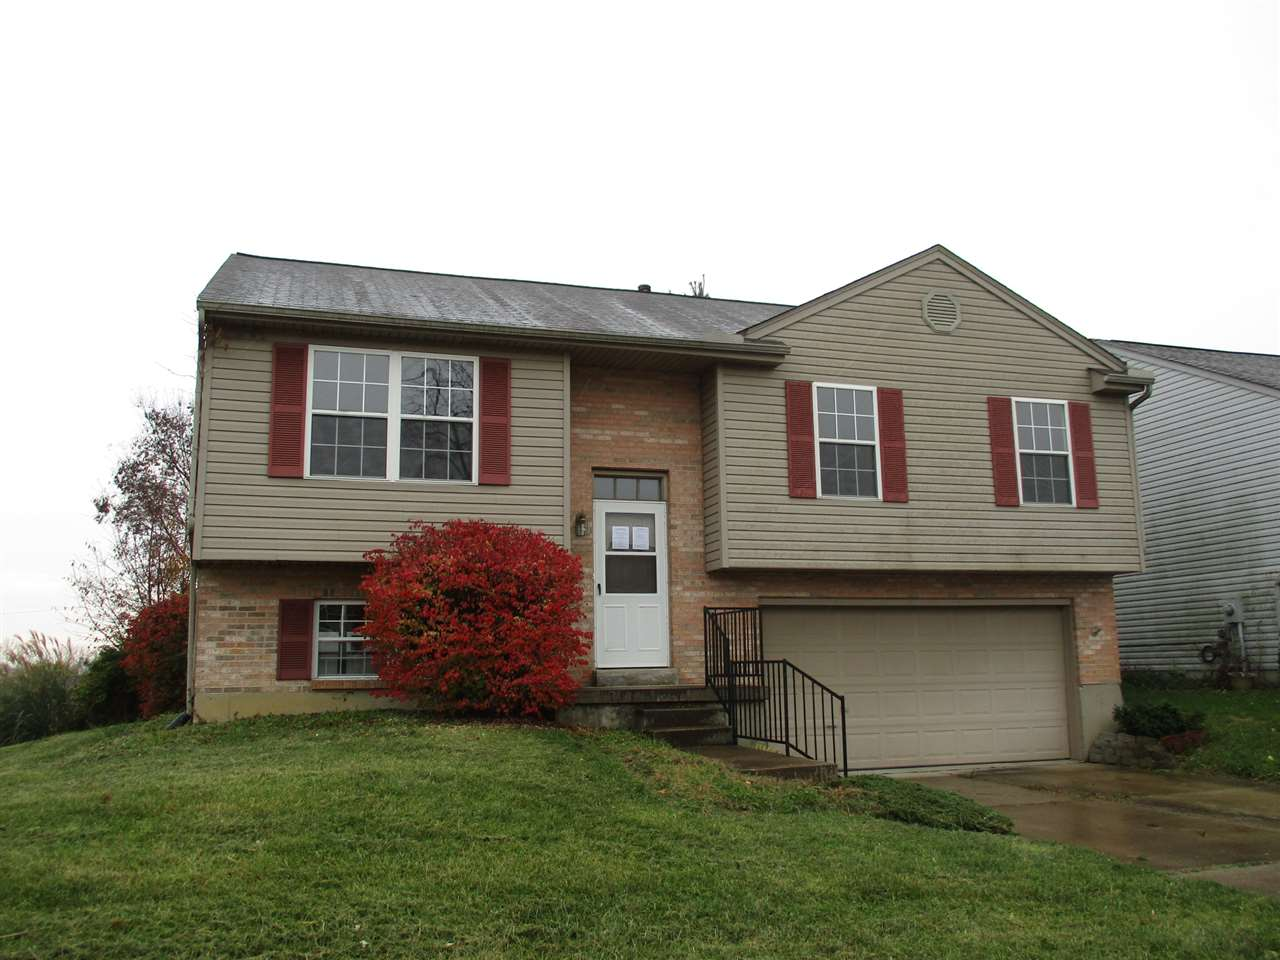 Photo 1 for 1135 Kims Ln Elsmere, KY 41018